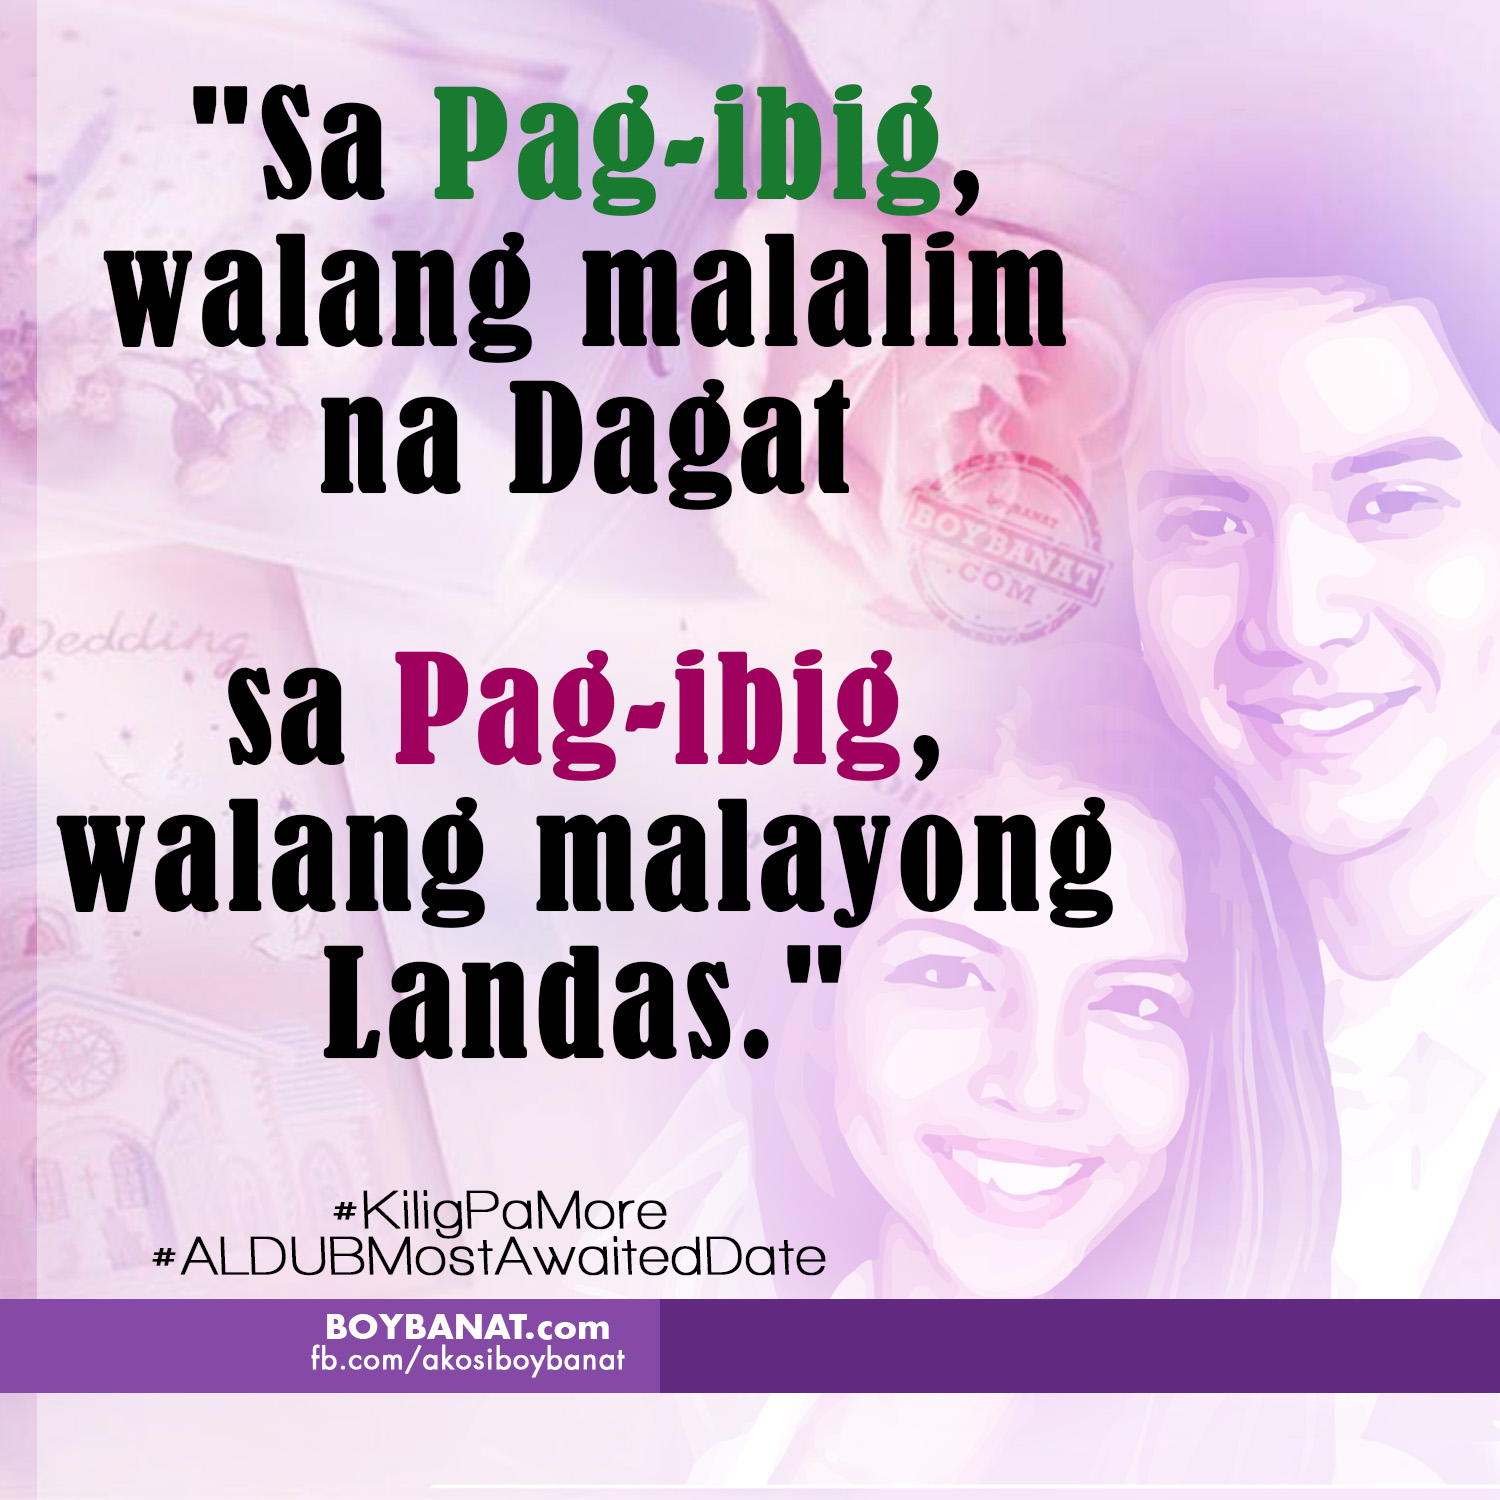 Most Meaningful Quotes 5 Meaningful Love Quotes On Aldub's Most Awaited First Date  Boy